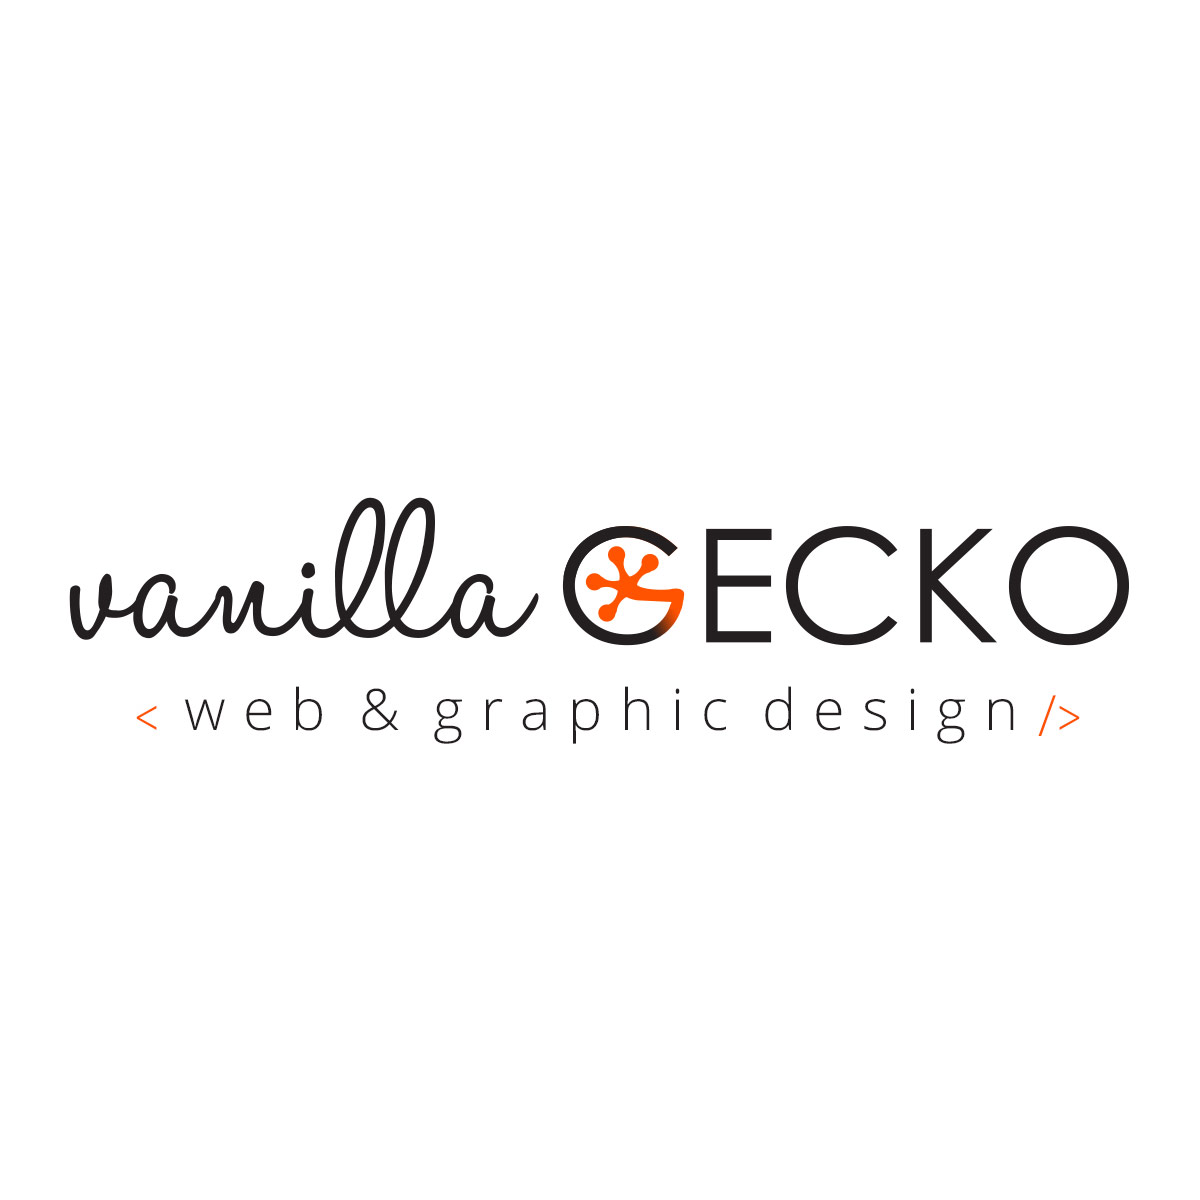 Search Engine Optimisation (SEO) – What Does it Involve? | Vanilla Gecko Web & Graphic Design : Articles